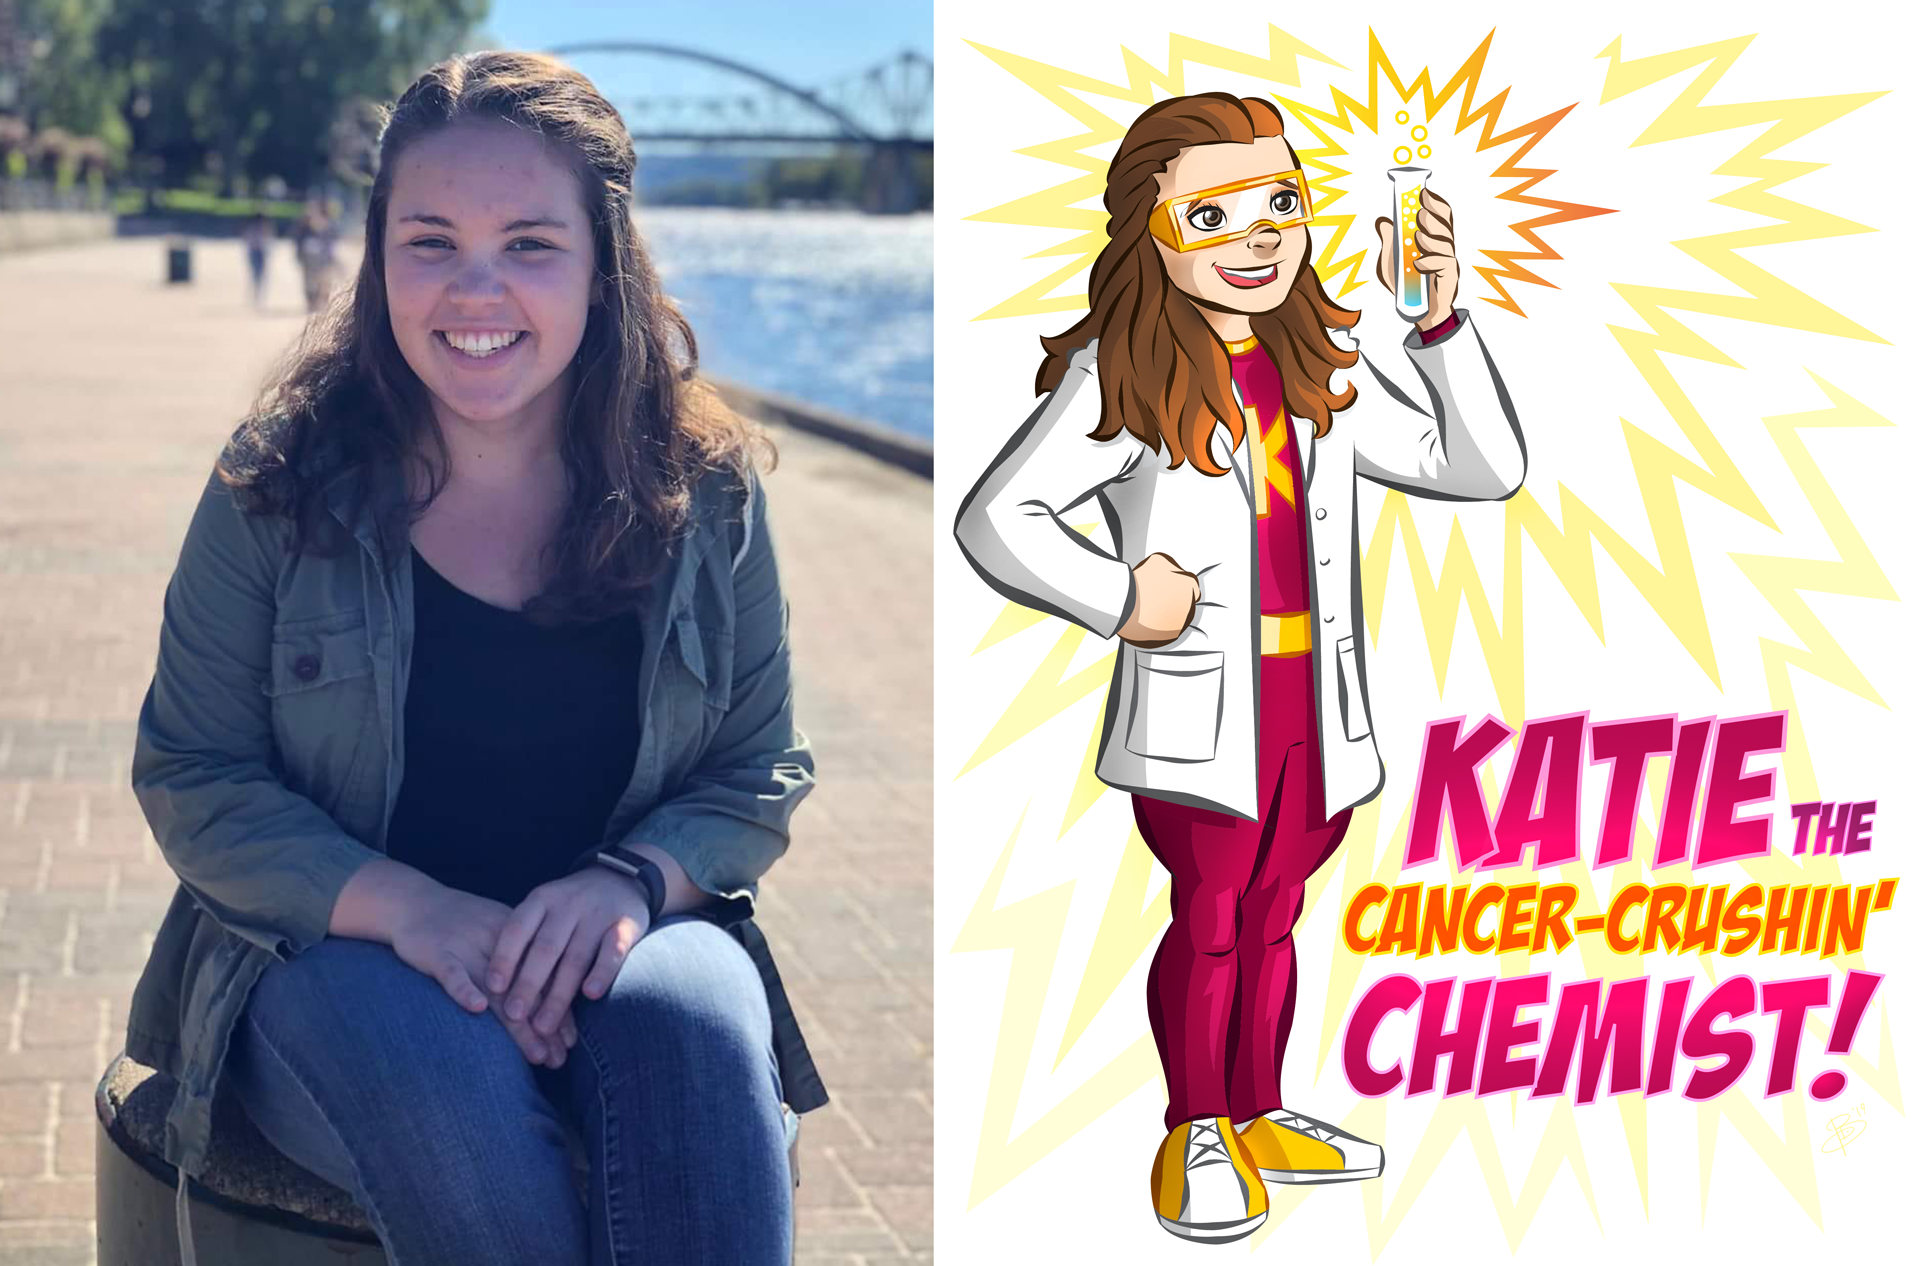 Katie (The Cancer-Crushin' Chemist)